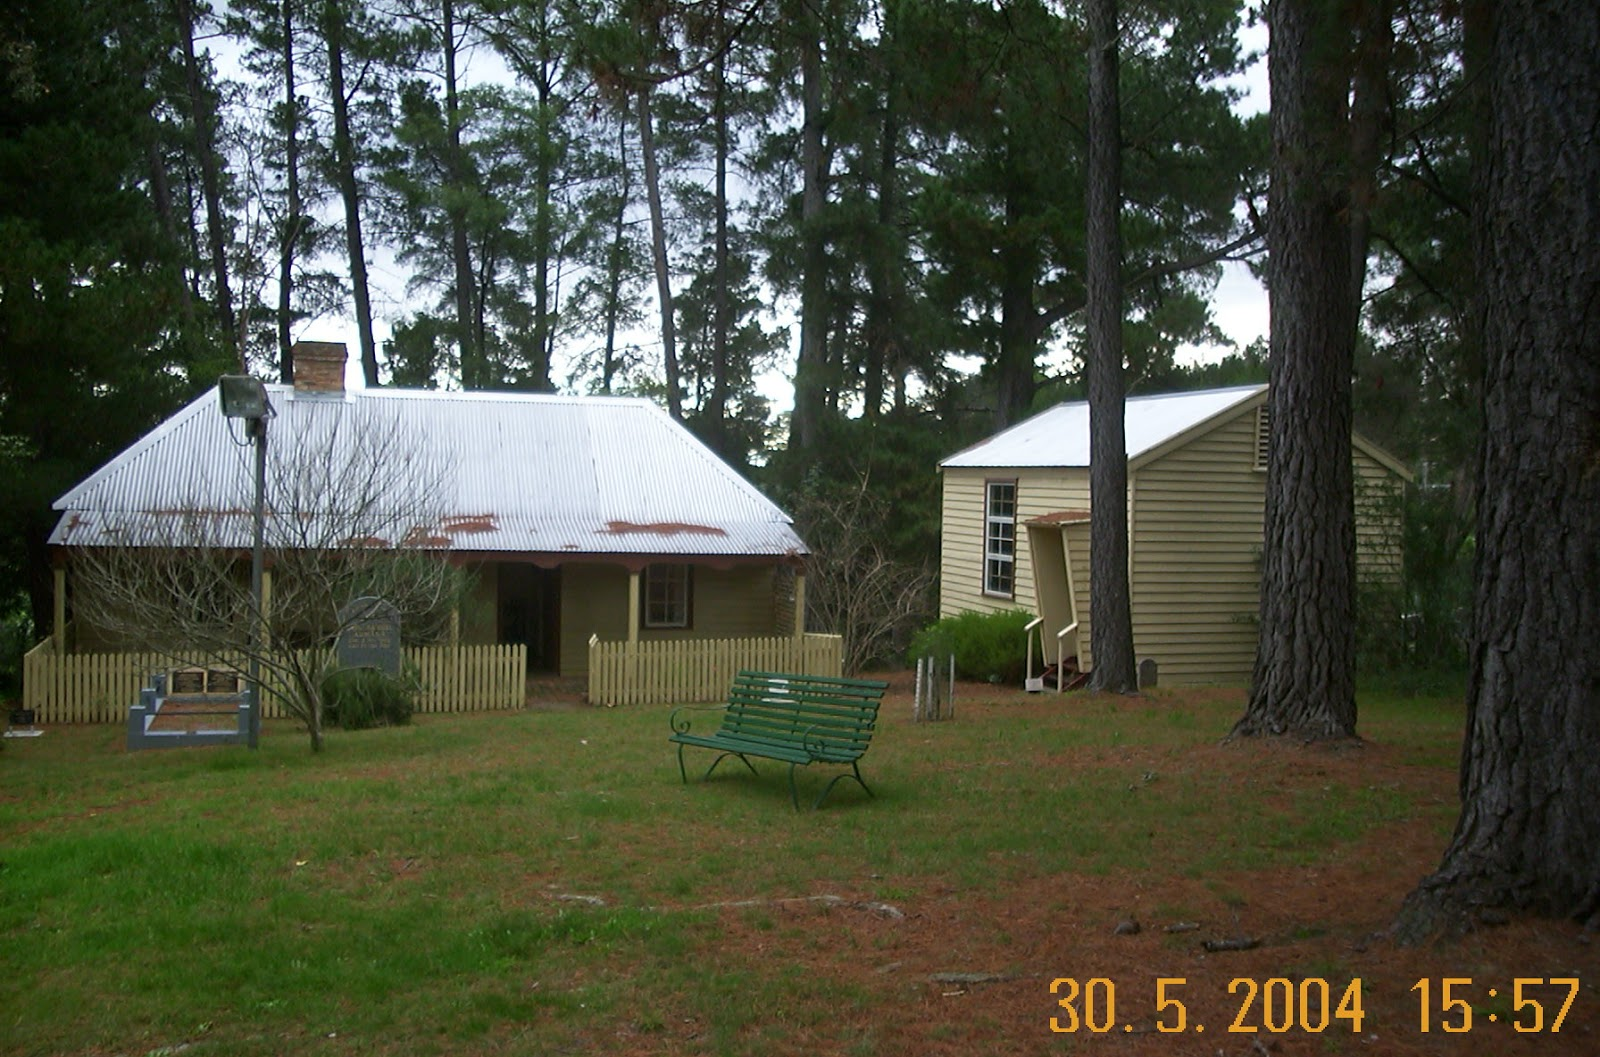 doncaster templestowe historical society: sloyd room